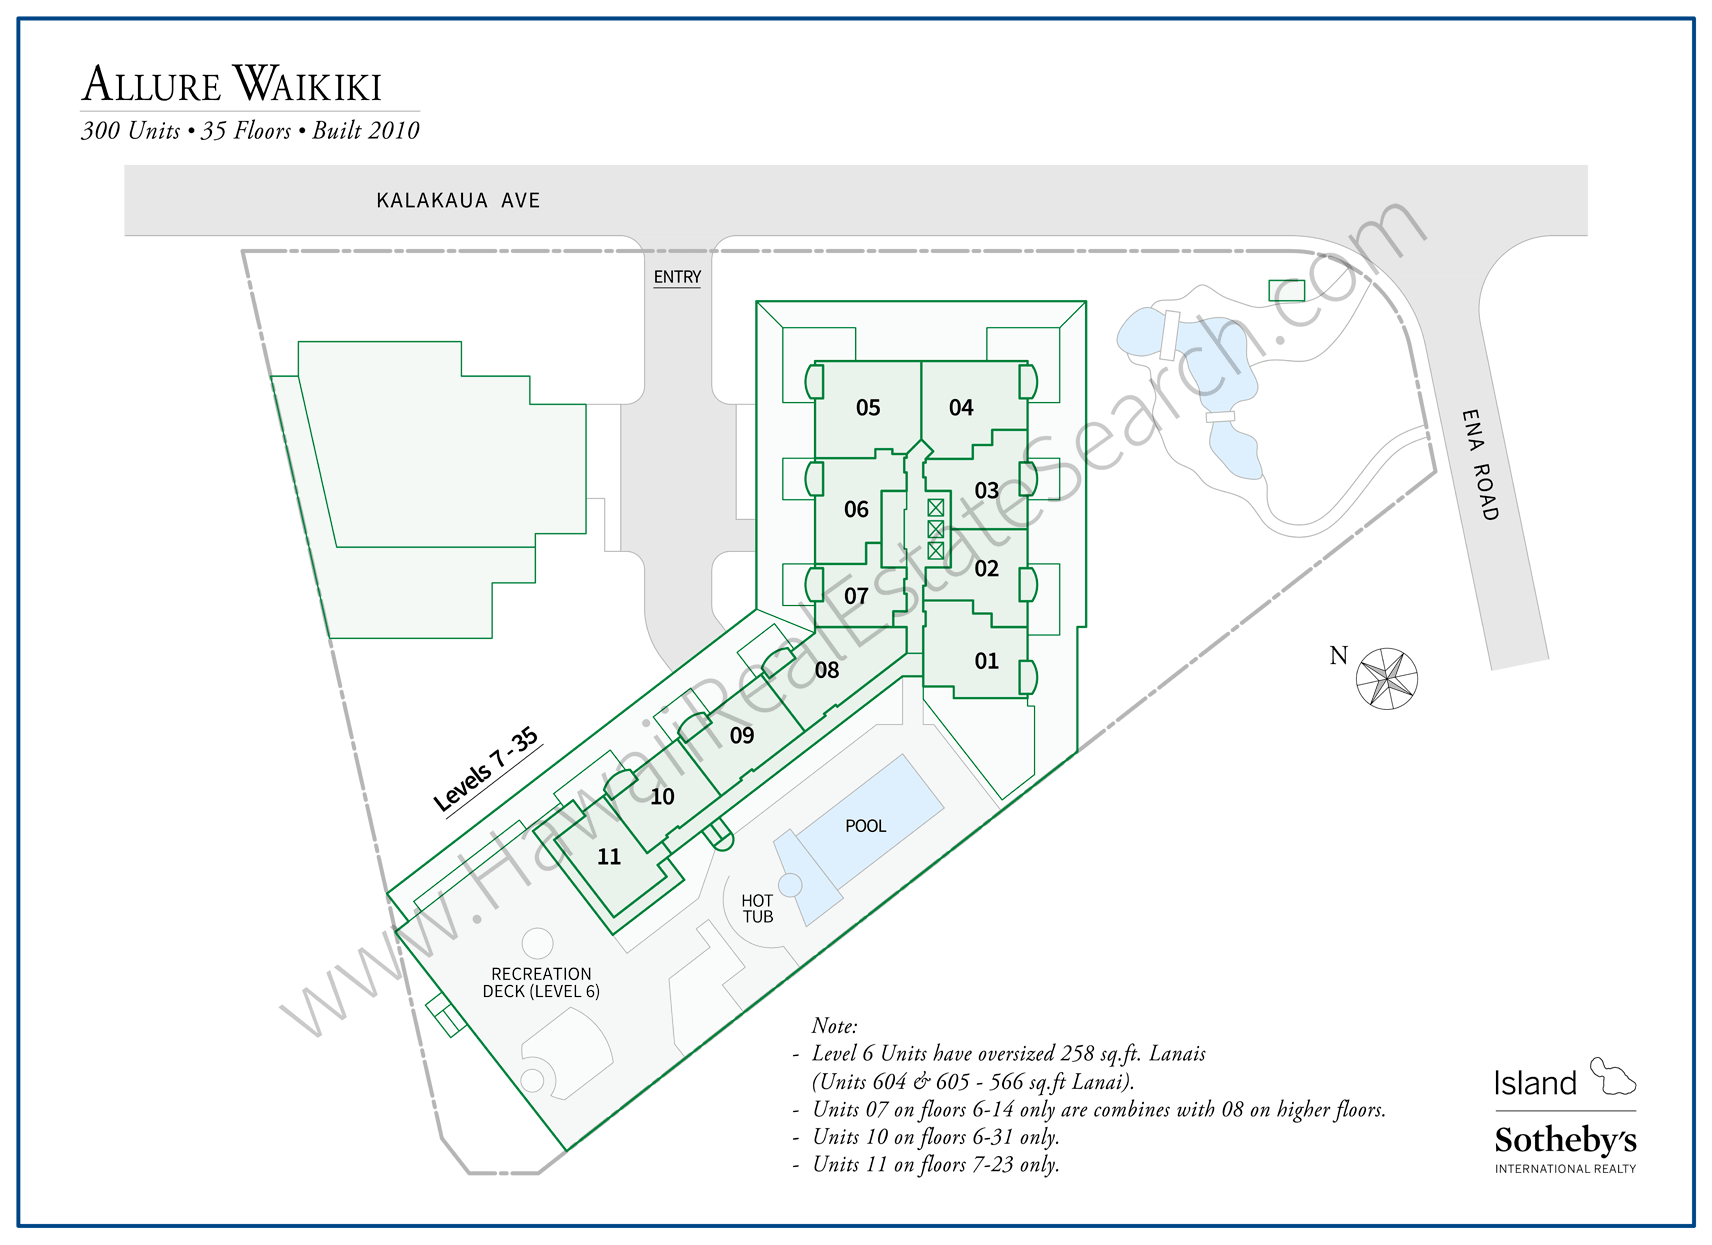 Allure Waikiki Map Updated 2018